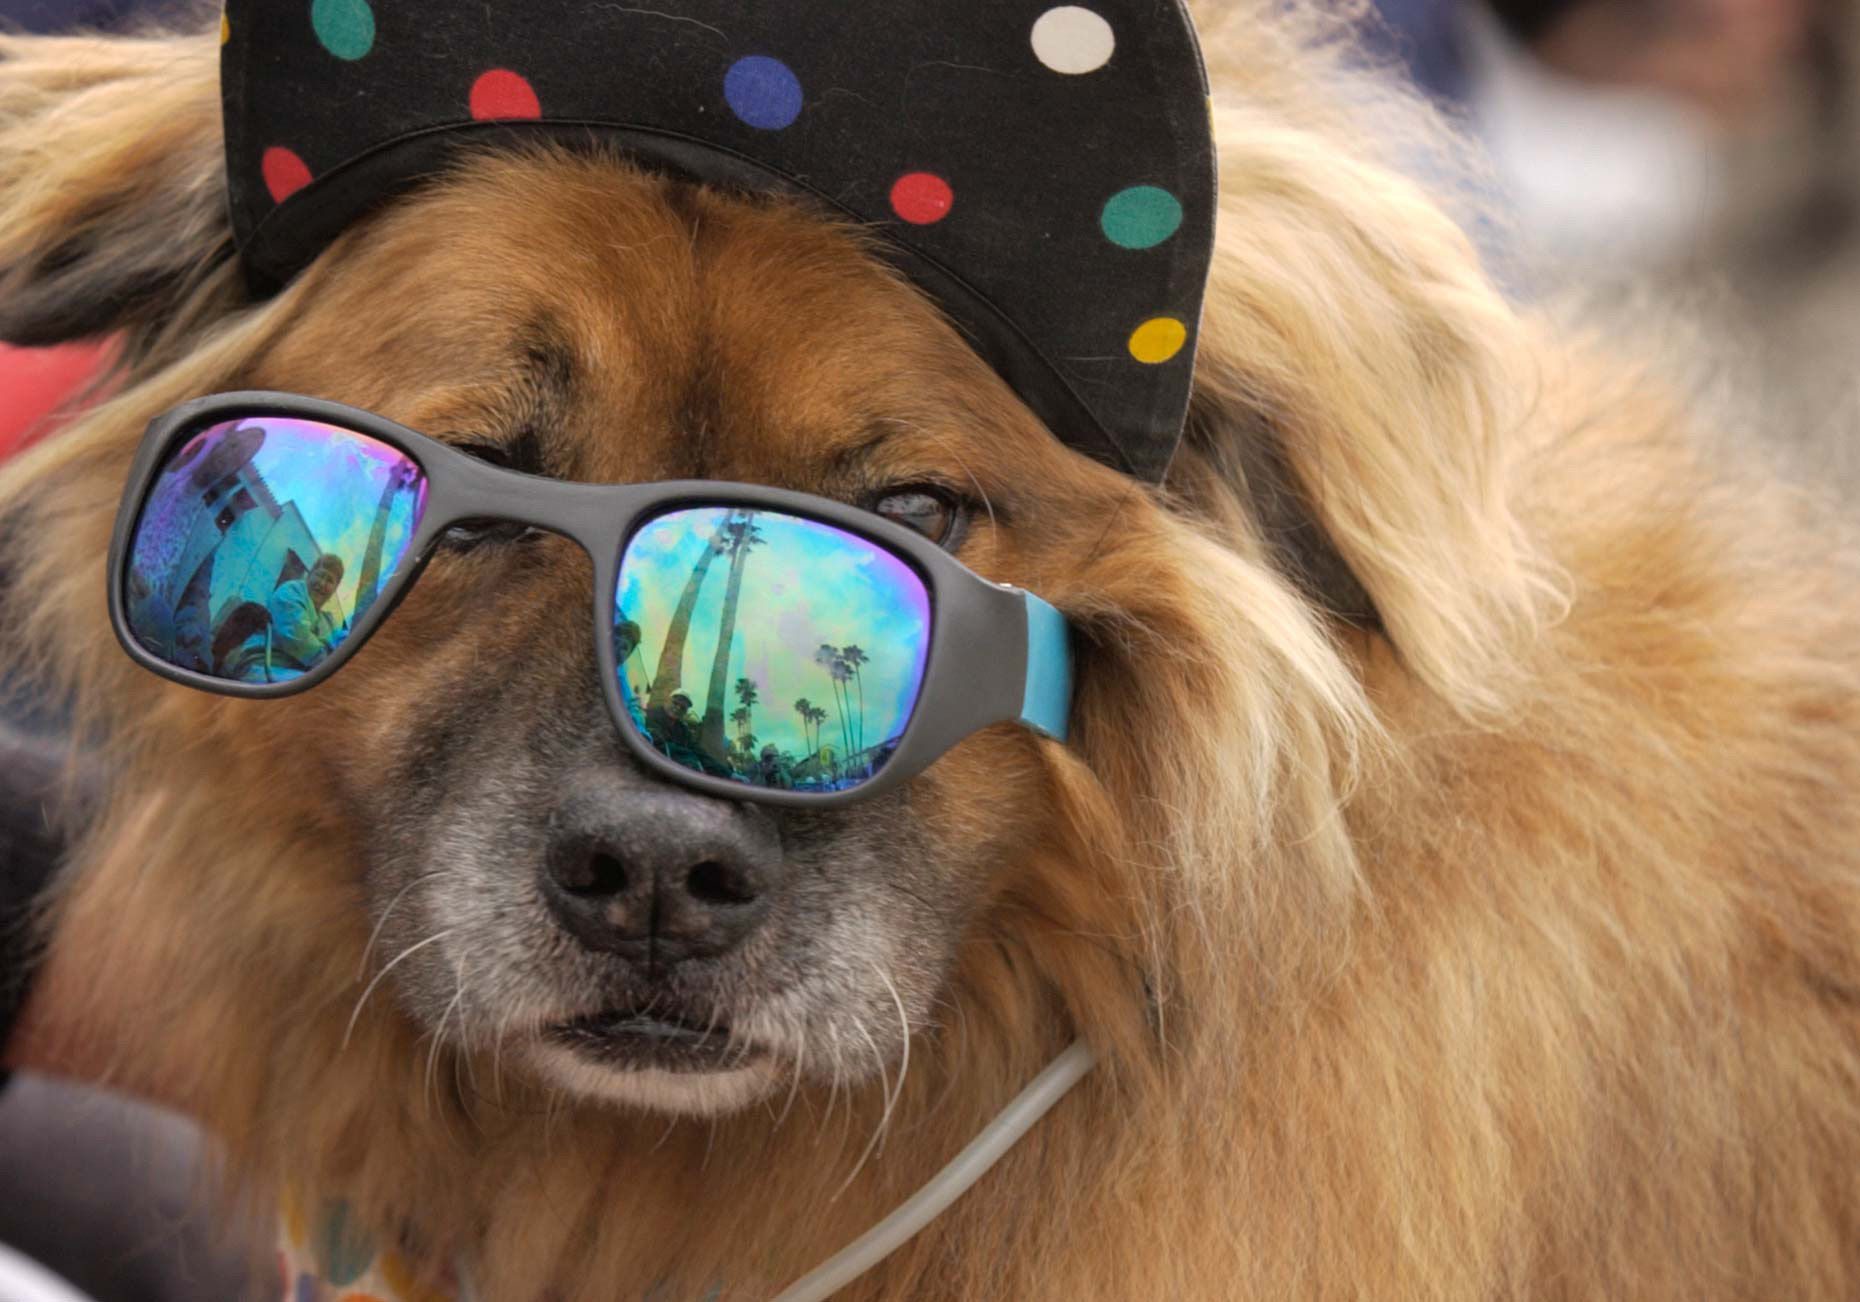 PAR_PhotoReporters_dog-wearing-sunglasses-hat